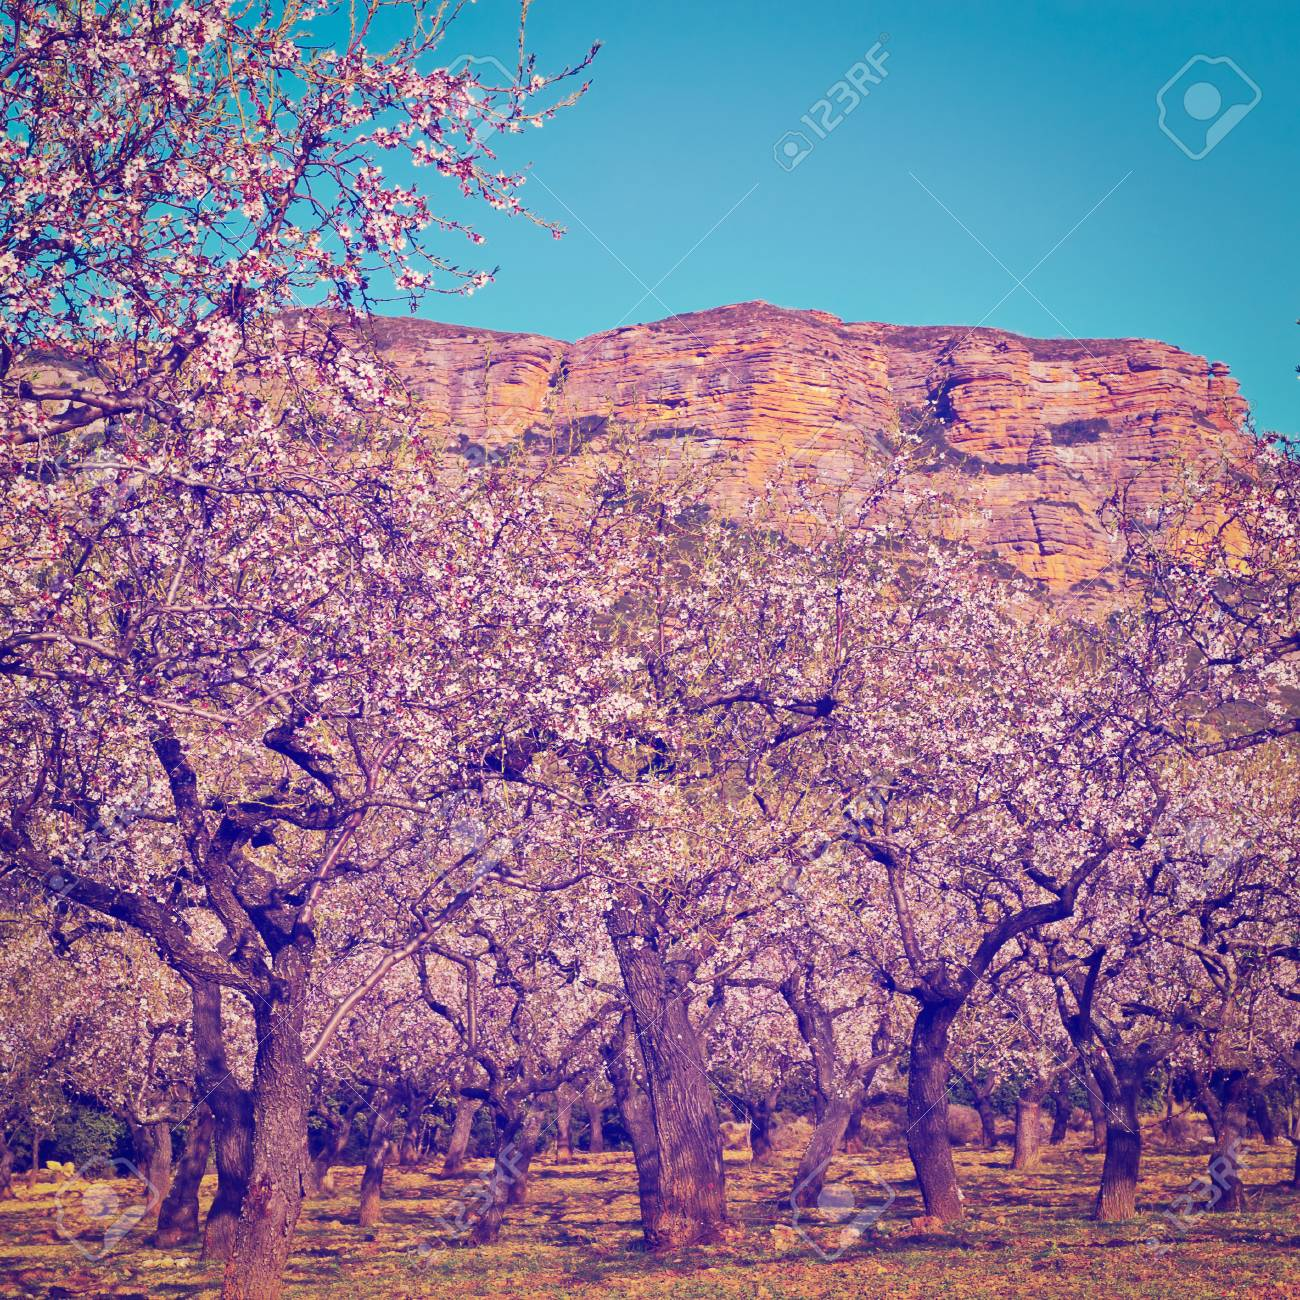 Rocks In Spanish Part - 27: Plantation Of Flowering Almonds On A Background Of Rocks In The Spanish  Pyrenees Stock Photo -